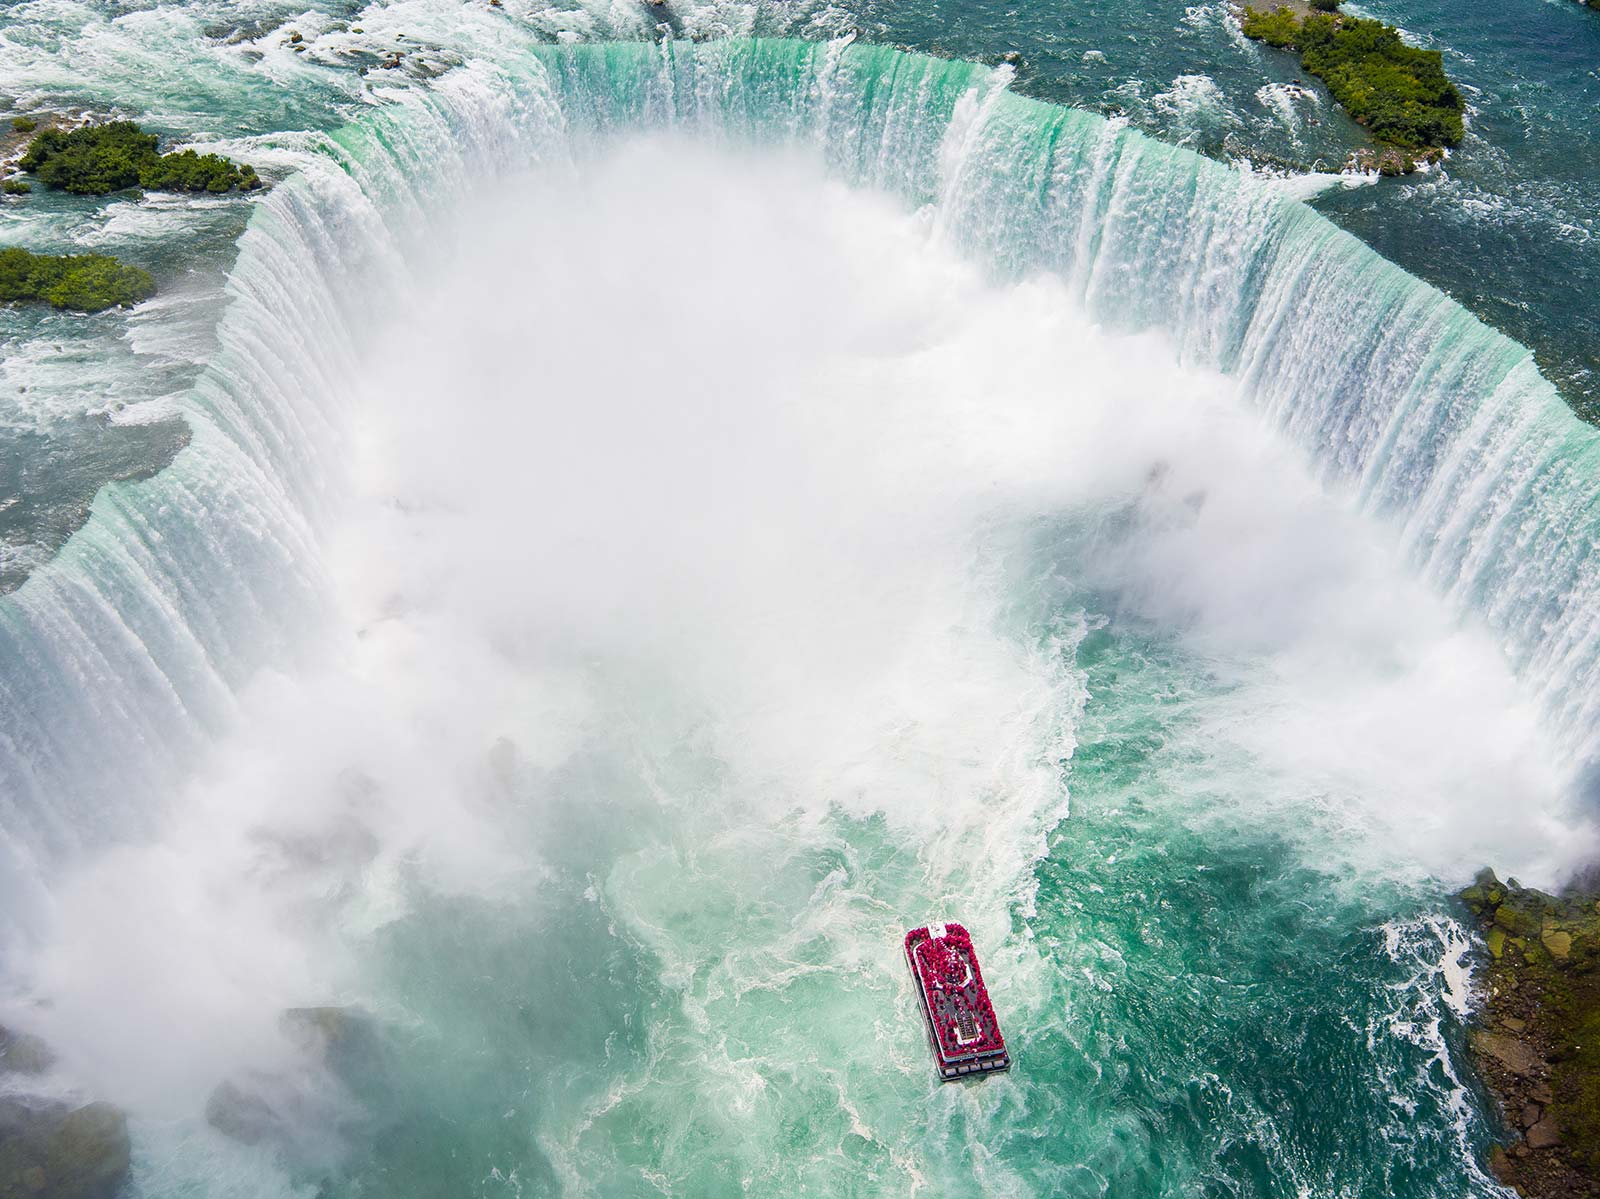 Drone Photography by Chase Guttman